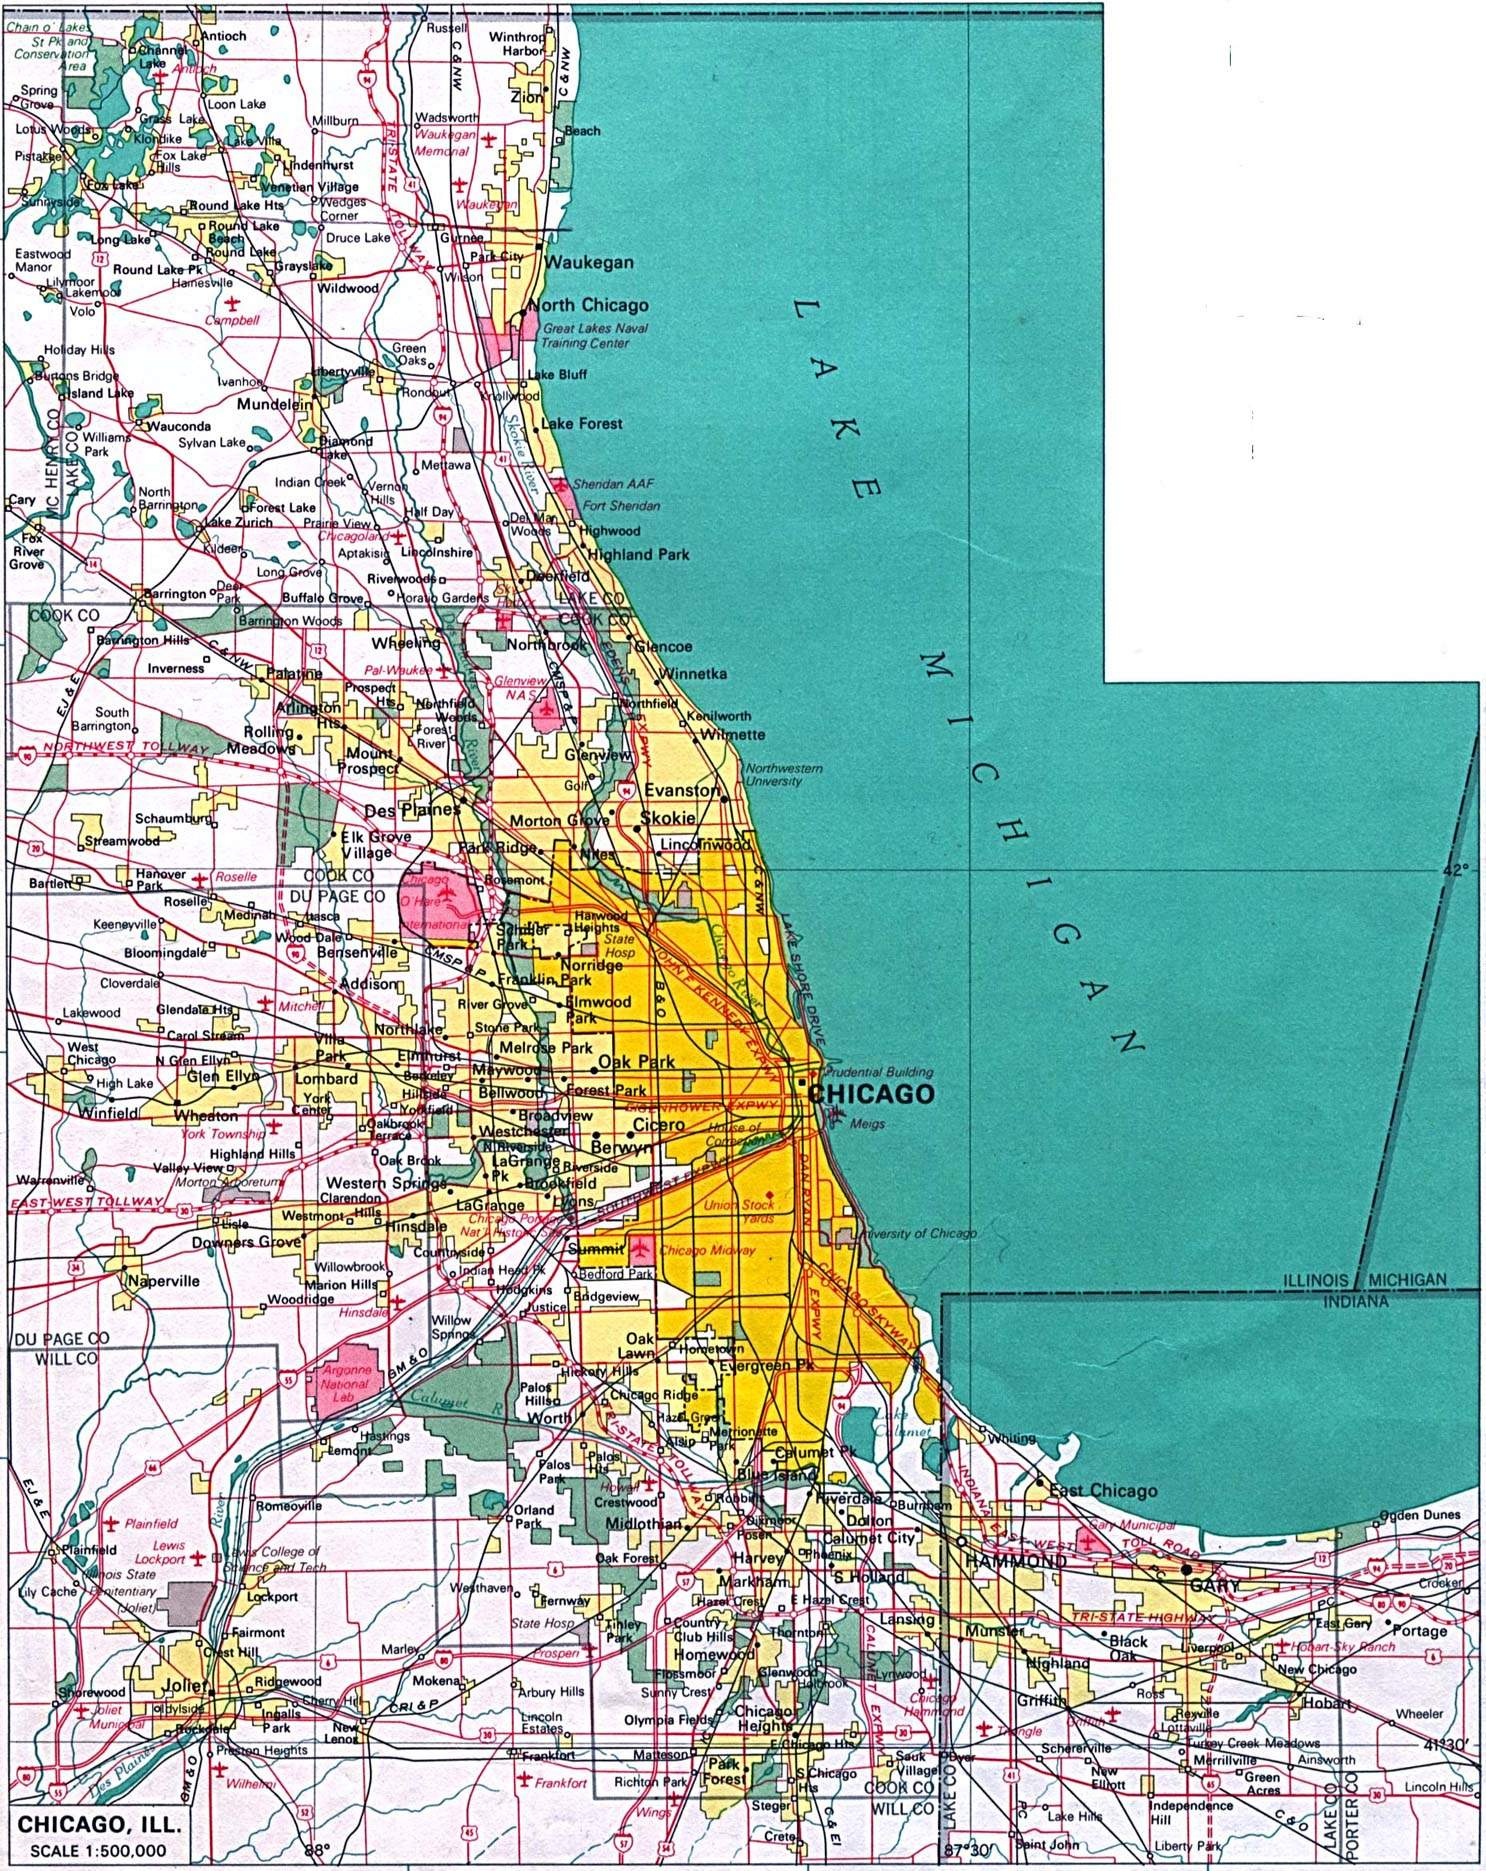 Large Chicago Maps For Free Download And Print   High-Resolution And - Printable Map Of Chicago